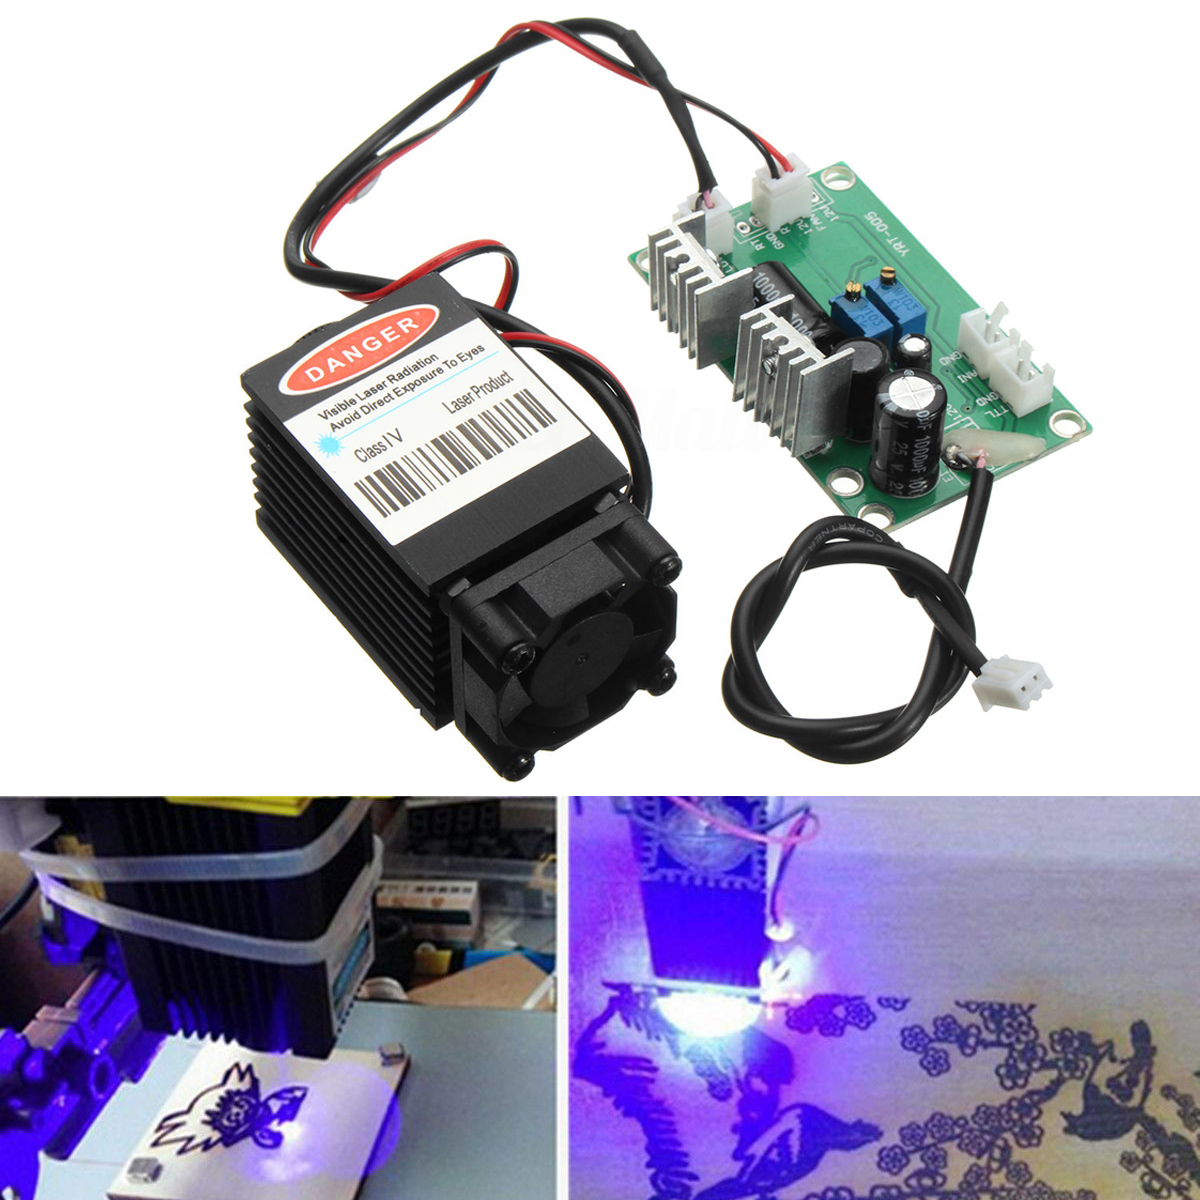 Focusable High Power Industrial Blue Laser Module 2.5W 450nm With TTL 12V Driver Board Wood Carving for CNC Machine industrial 650nm 150mw red laser module 650nm laser head with fan 12v ttl driver board